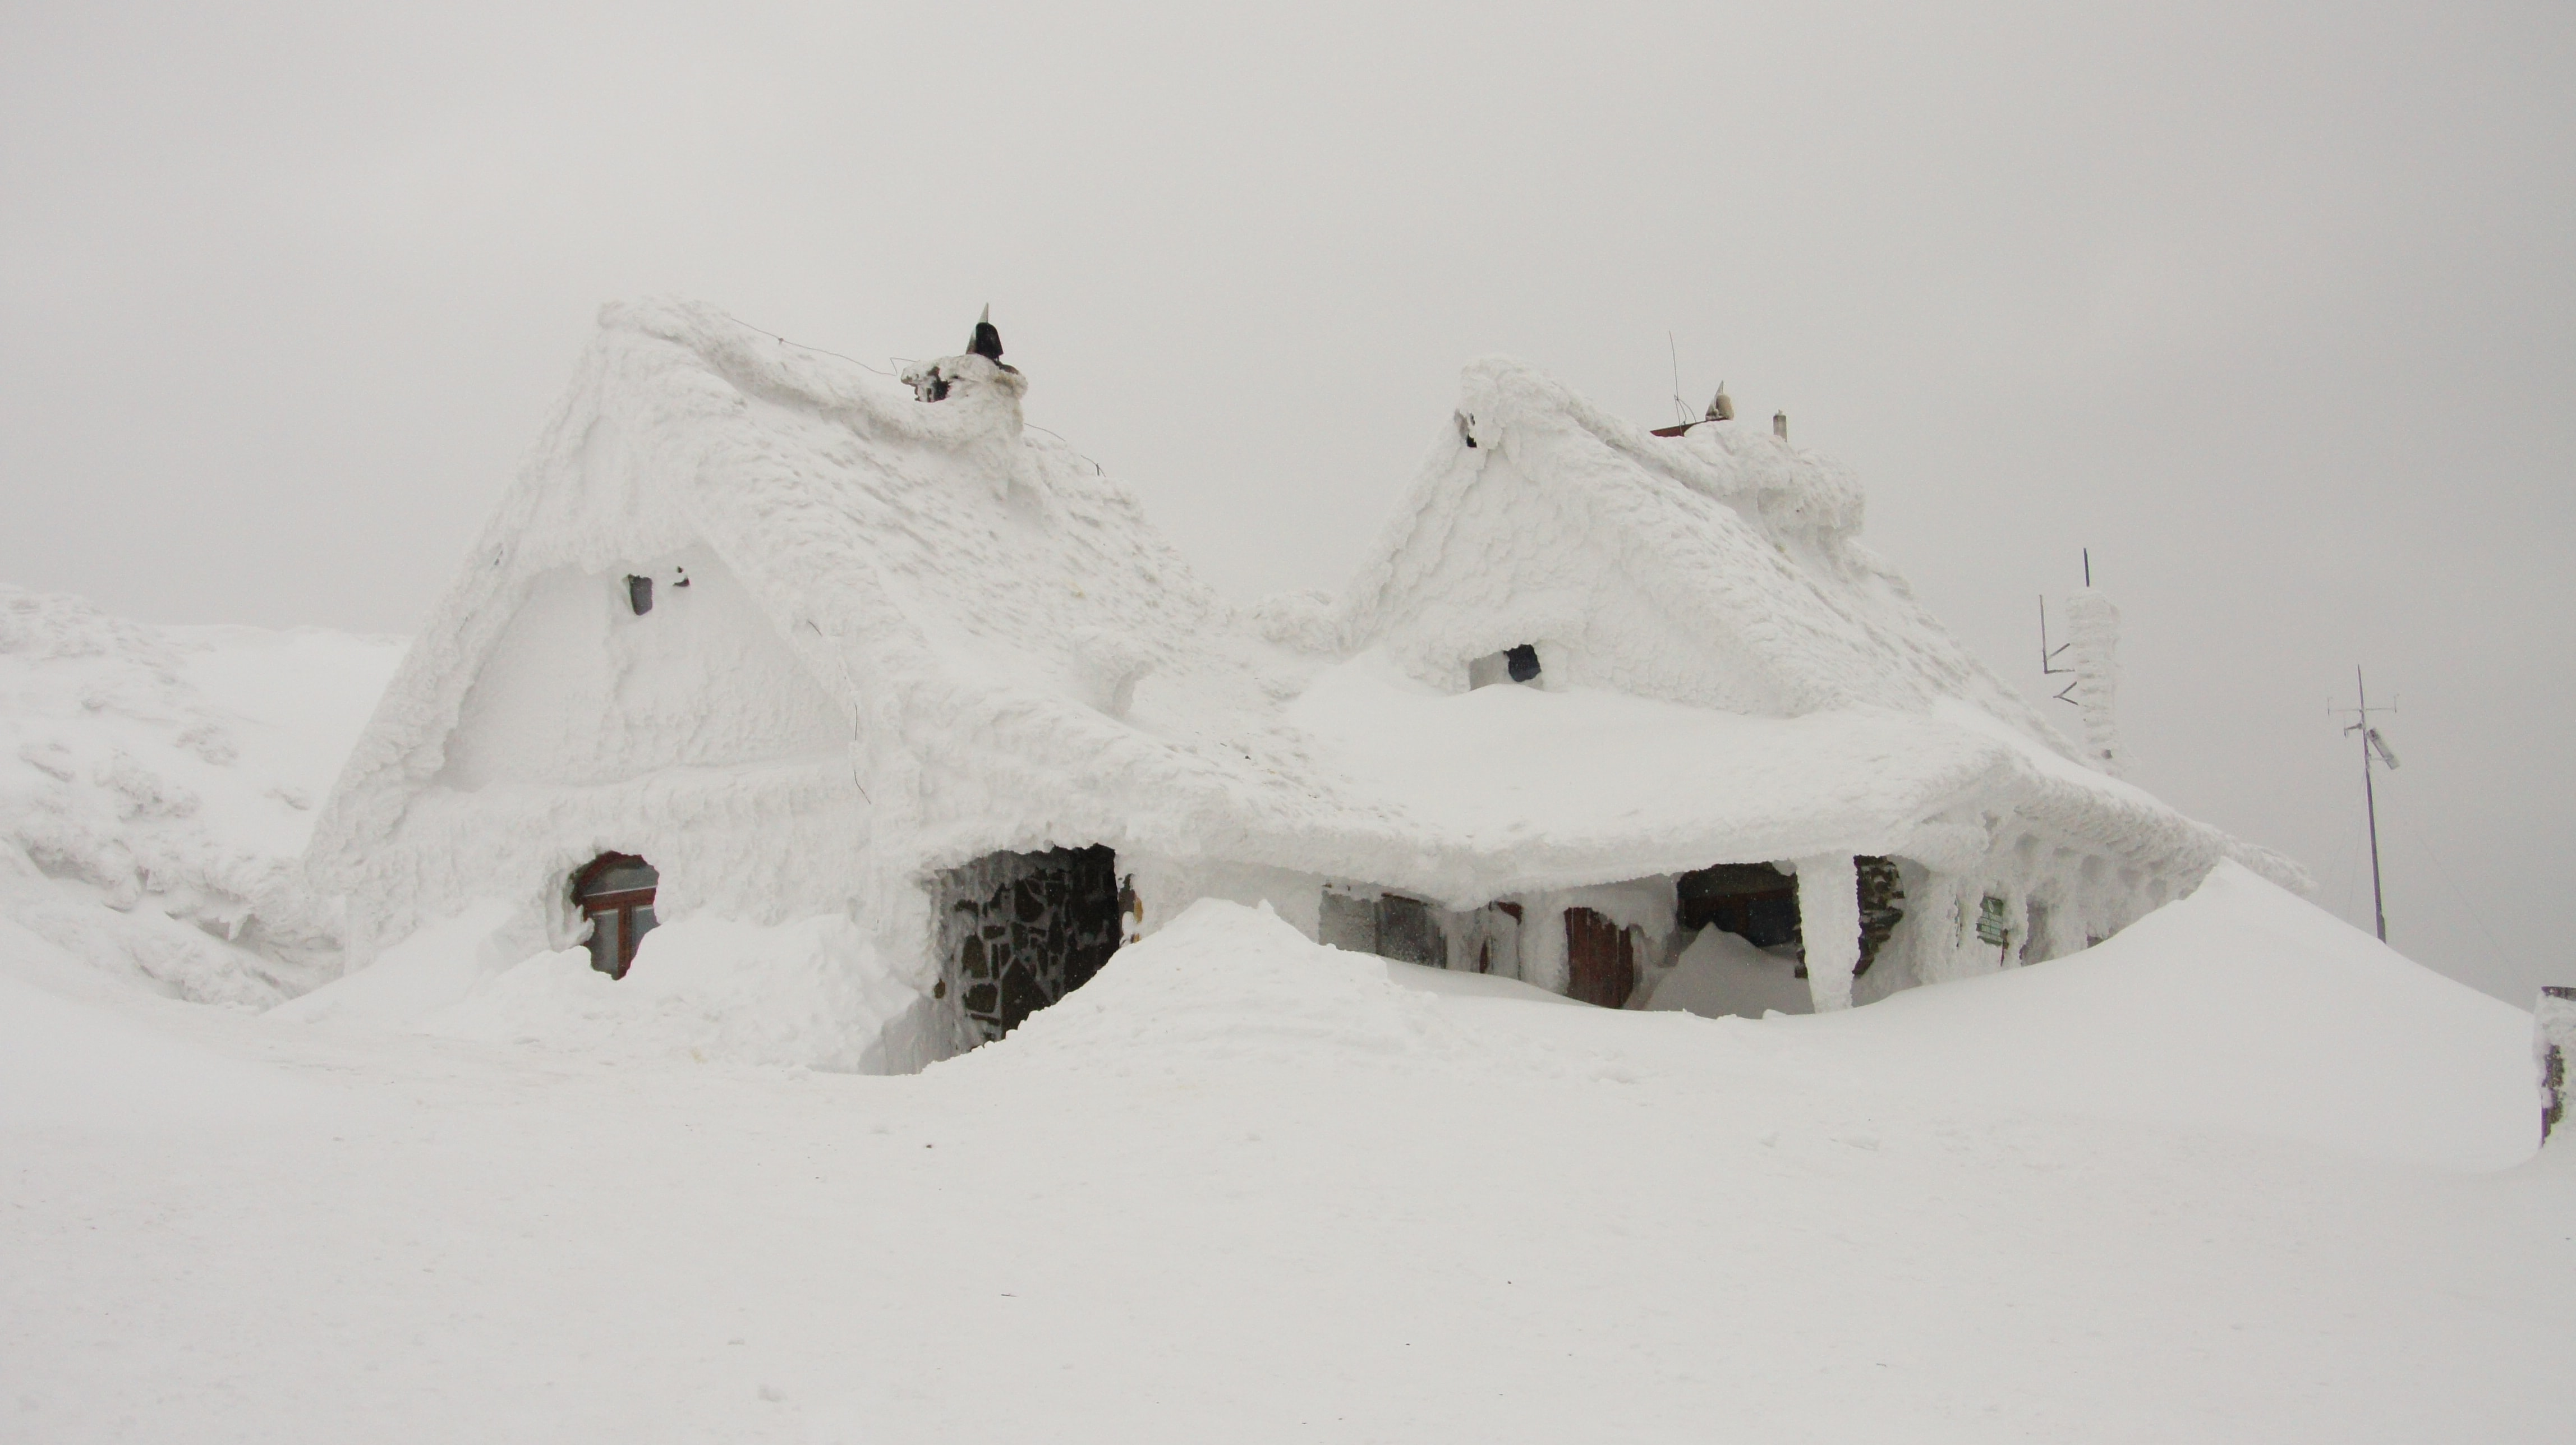 House covered with snow after the blizzard in Winter